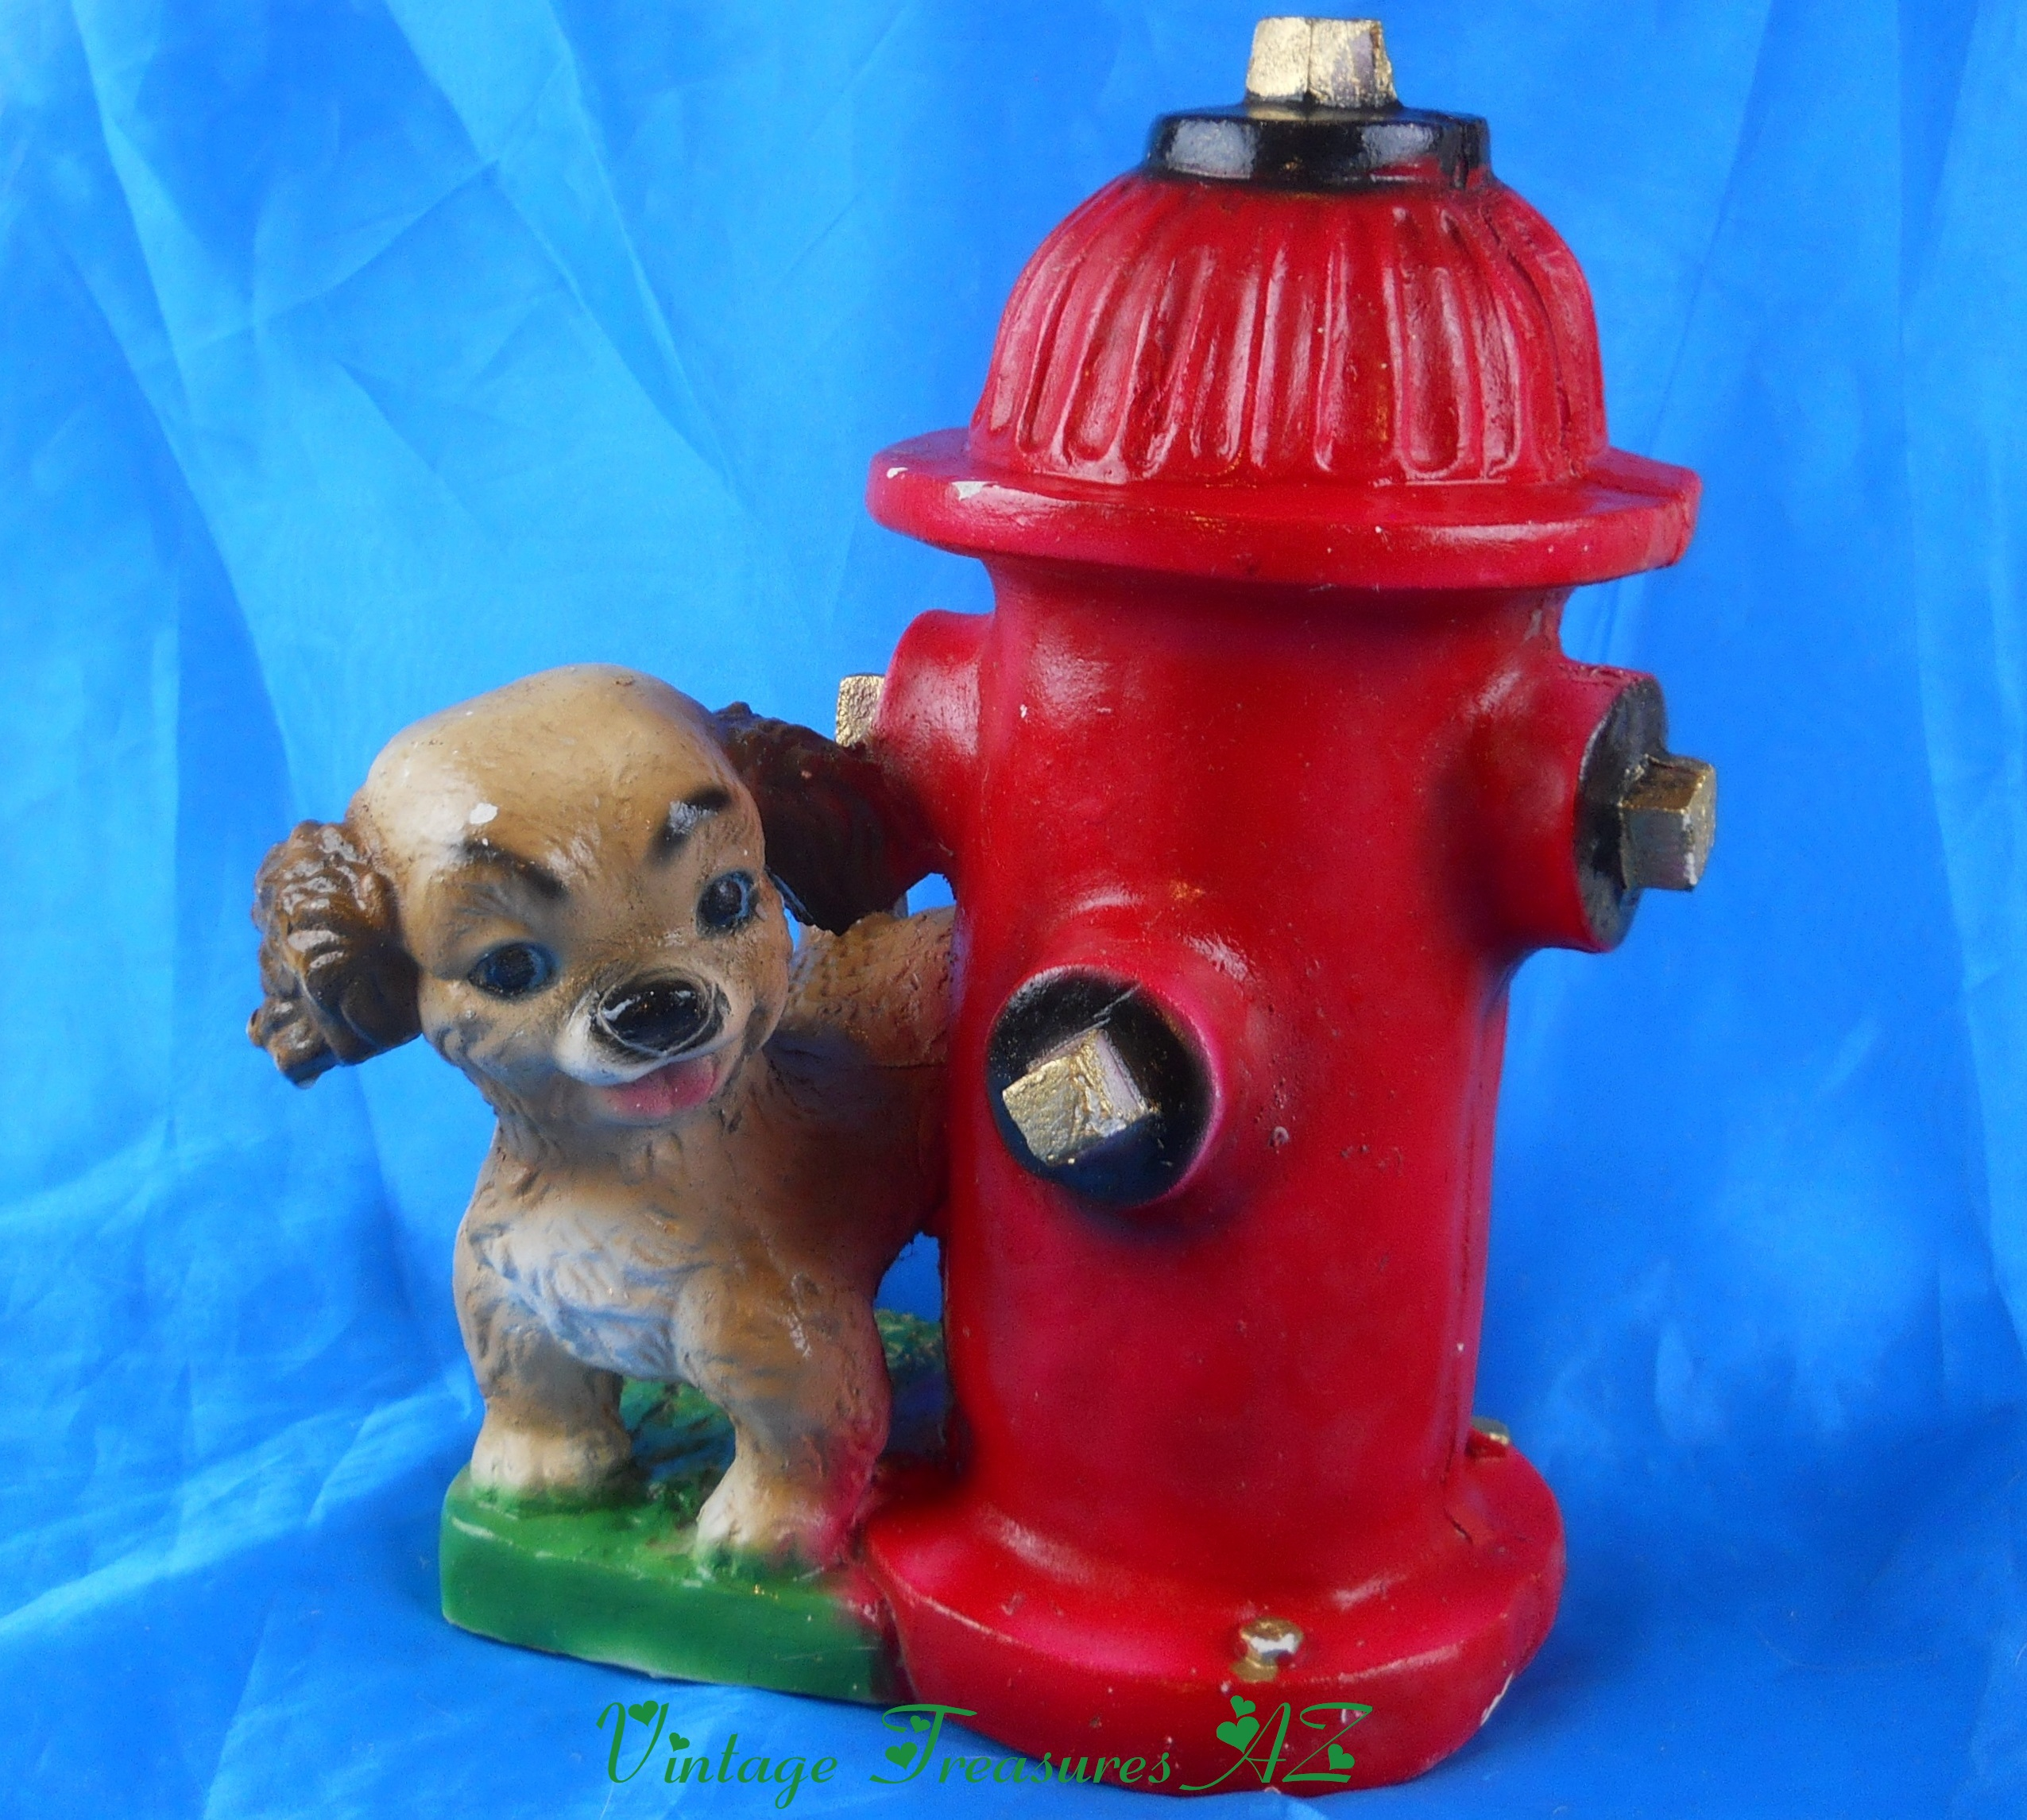 Image for <b><span style='color:purple'>   Dog Peeing On A Fire Hydrant RARE Huge Vintage Chalkware Coin Bank Made in Mexico </span></b><span style='color:purple'>   <b><span style='color:red'>***GROUND SHIPPING INCLUDED – DOMESTIC ORDERS ONLY!***</span></b><span style='color:purple'>